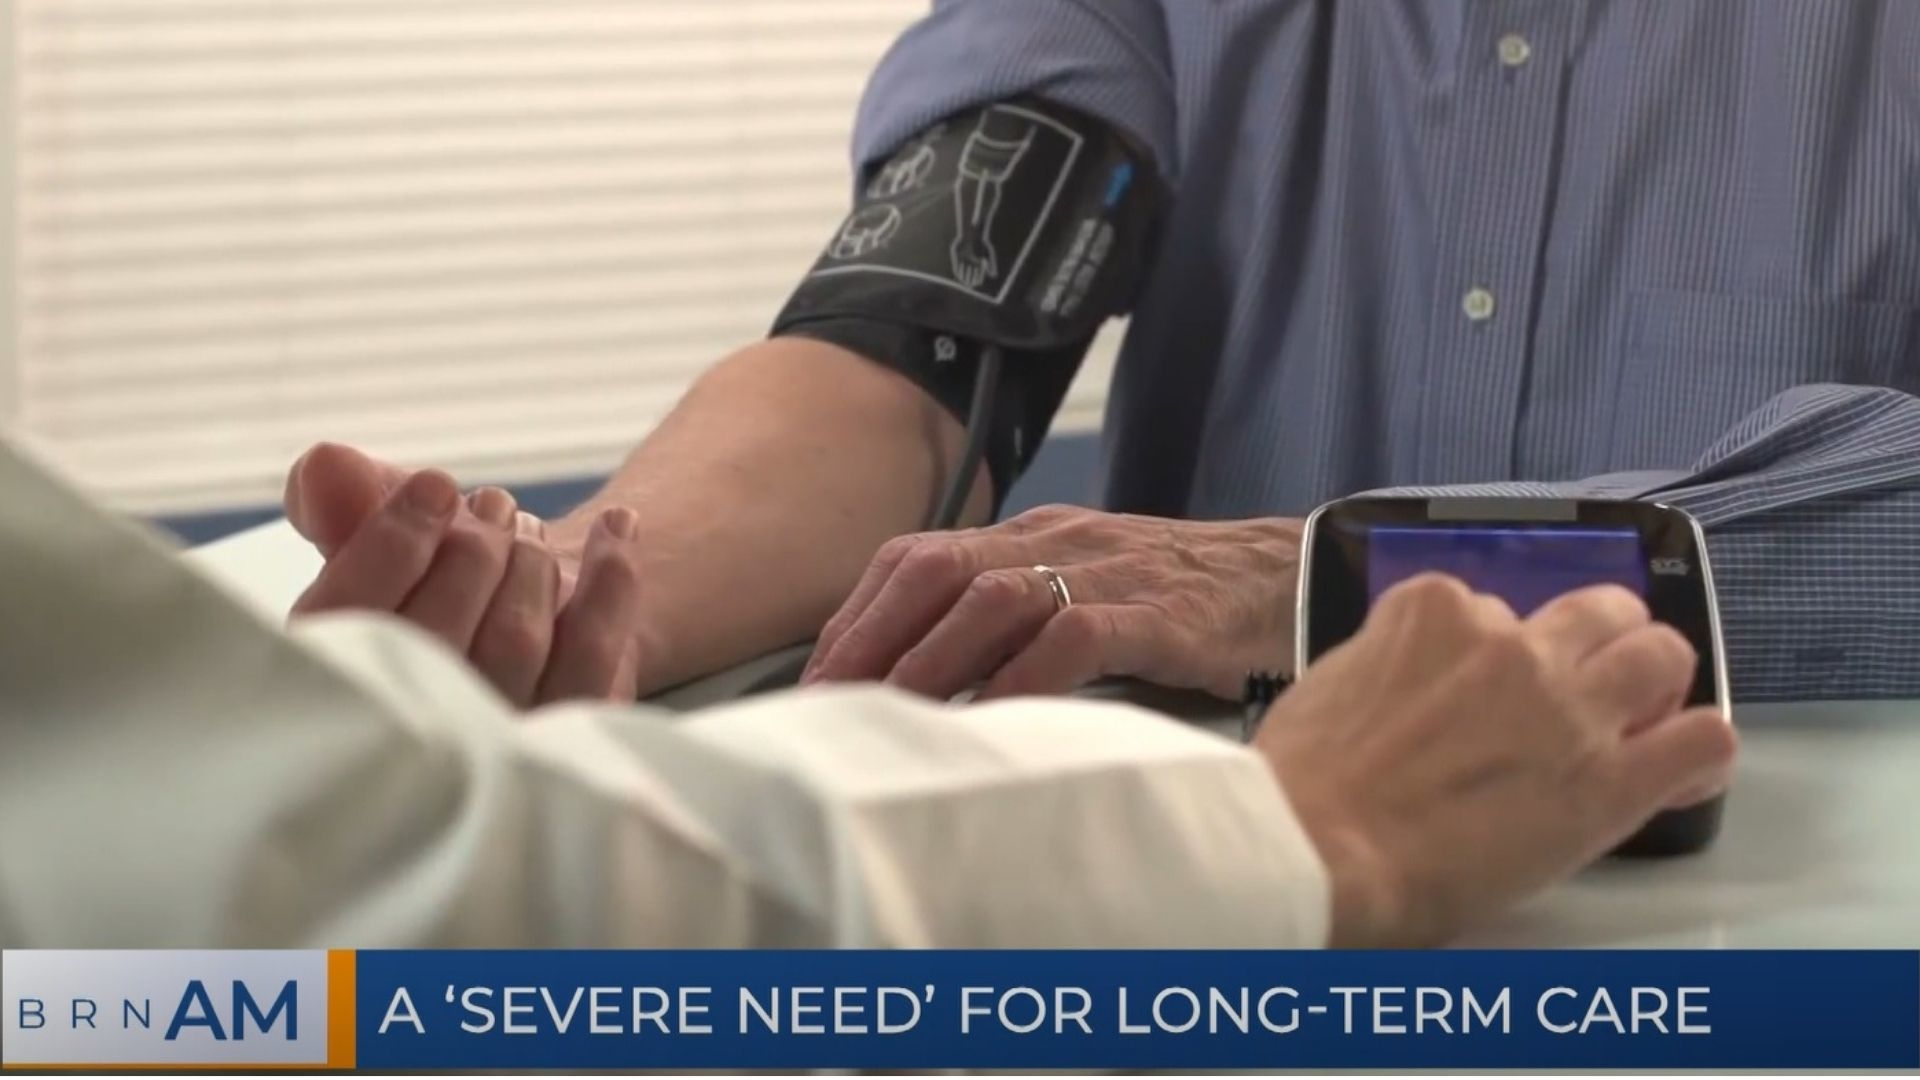 BRN AM | A 'Severe Need' for Long-Term Care